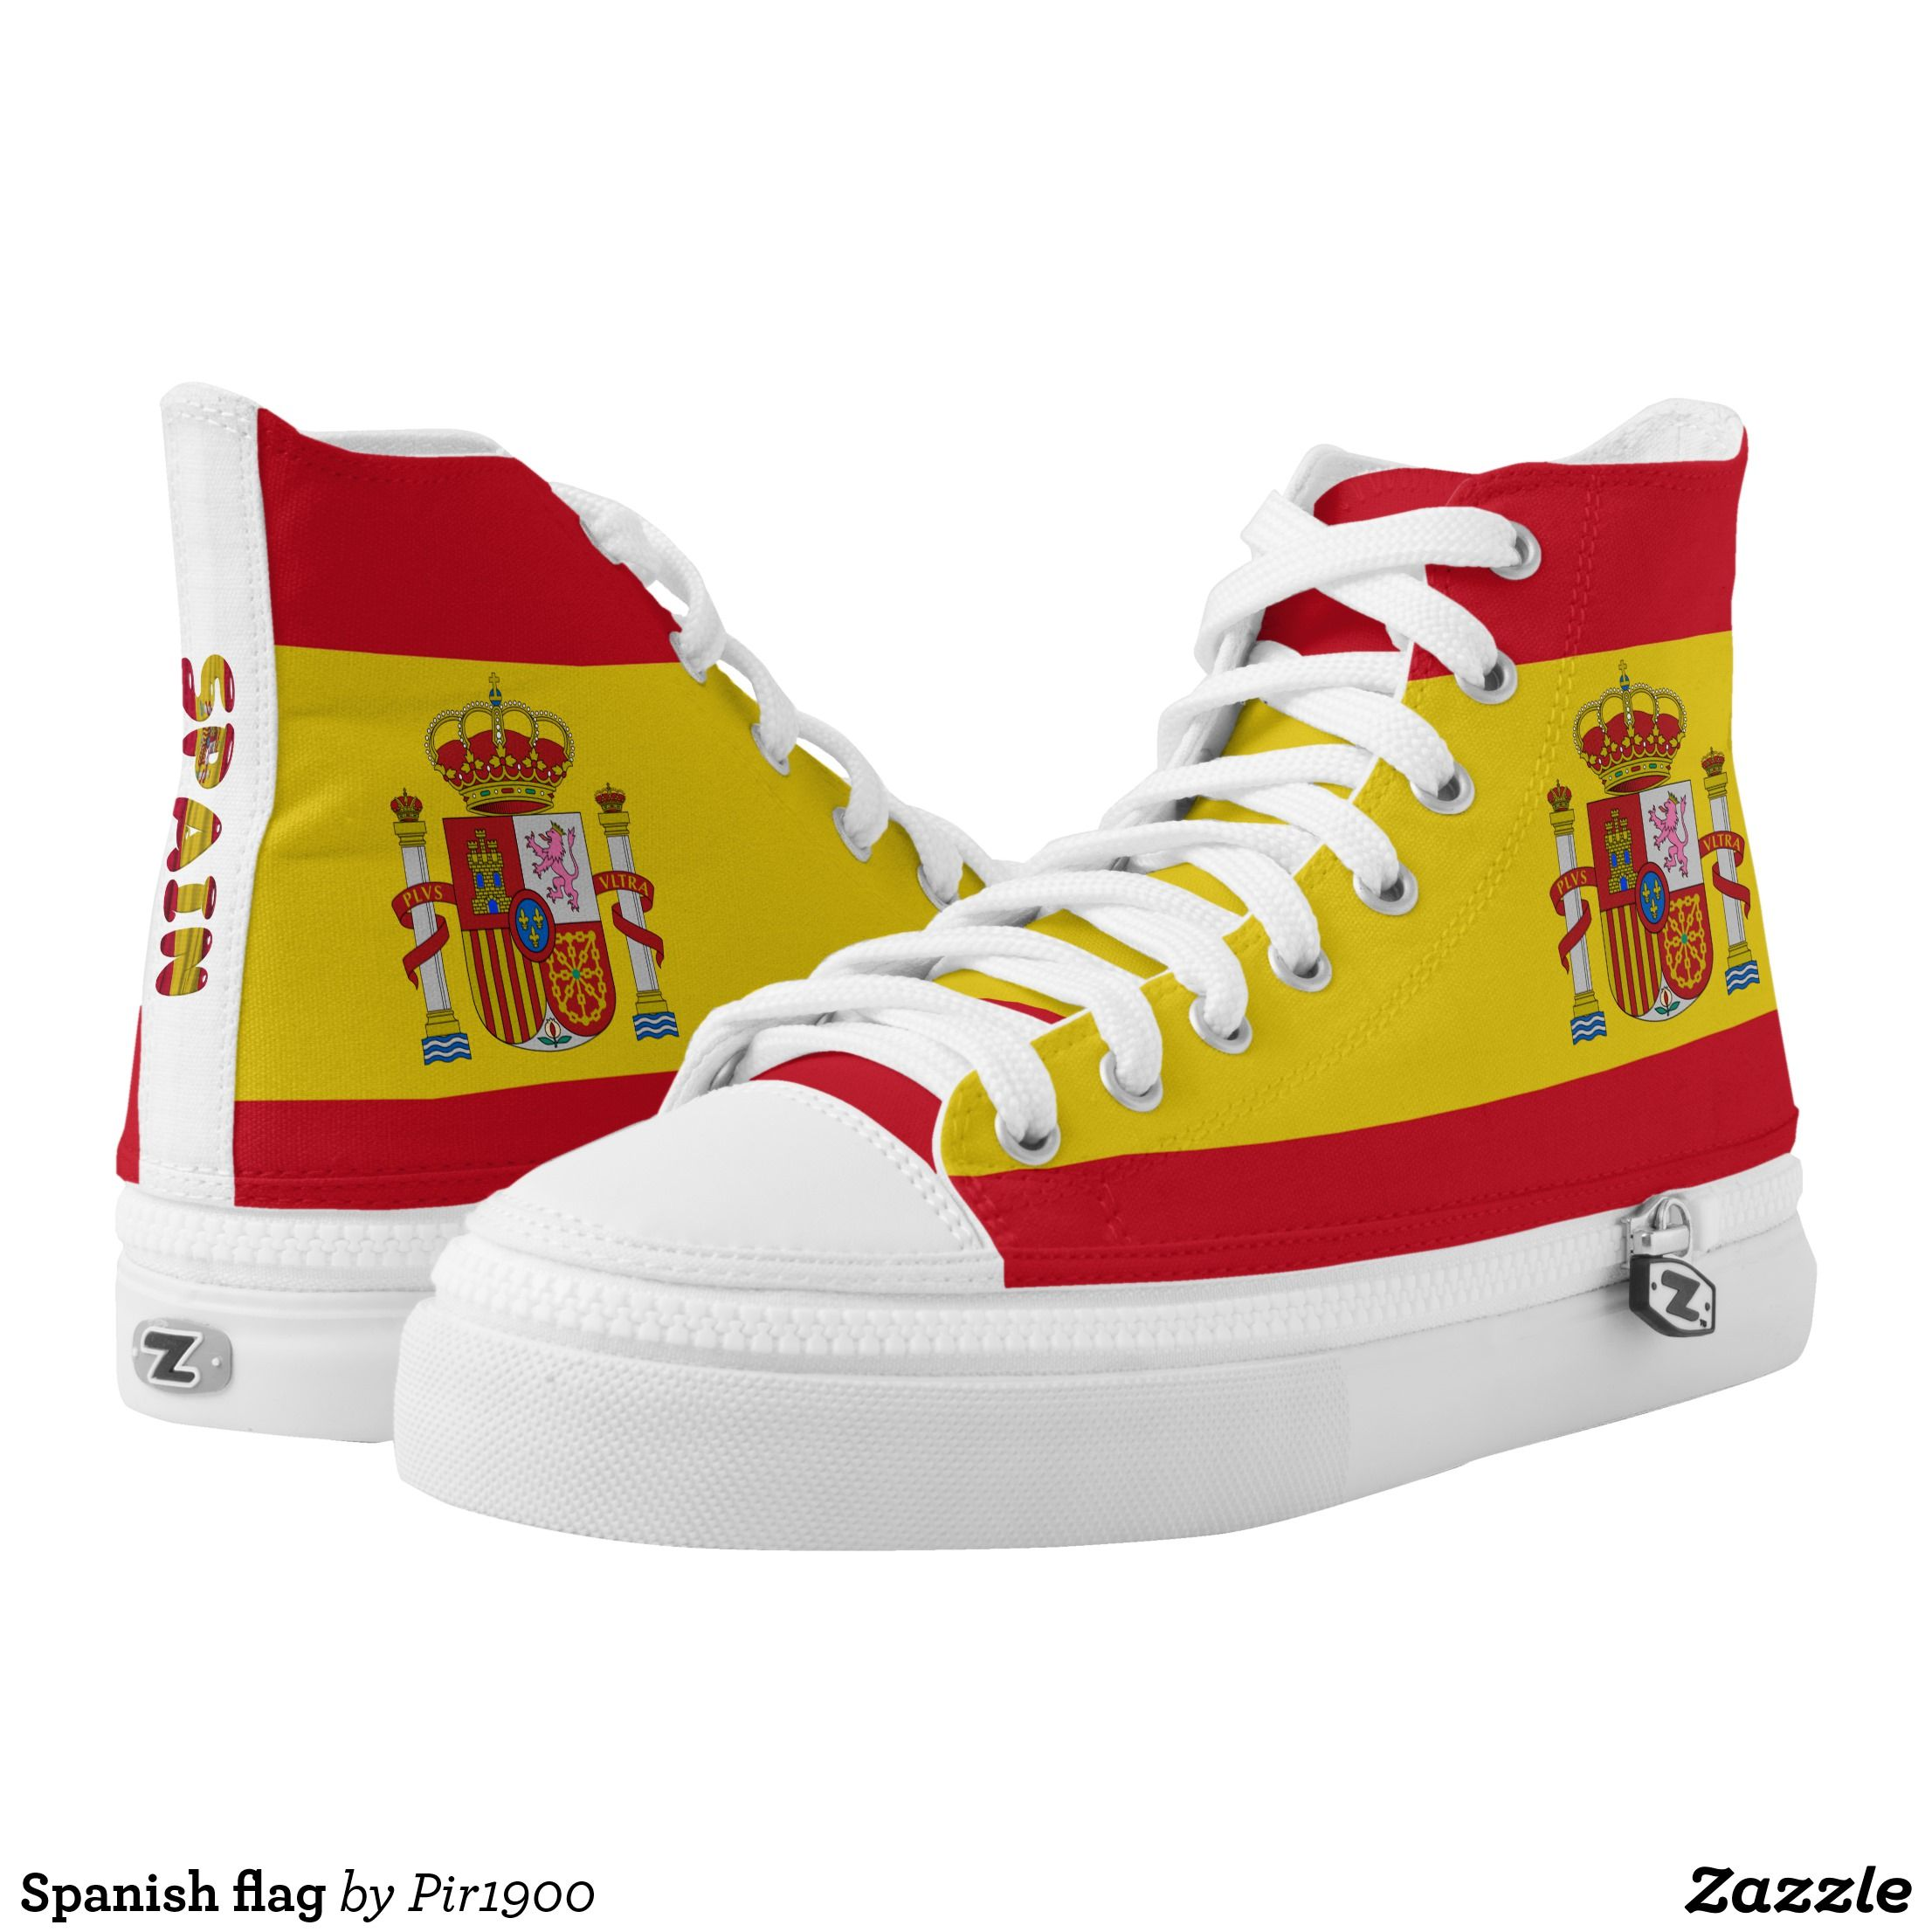 ab10db369d003b Spanish flag High-Top sneakers - Canvas-Top Rubber-Sole Athletic Shoes By  Talented Fashion And Graphic Designers -  shoes  sneakers  footwear   mensfashion ...